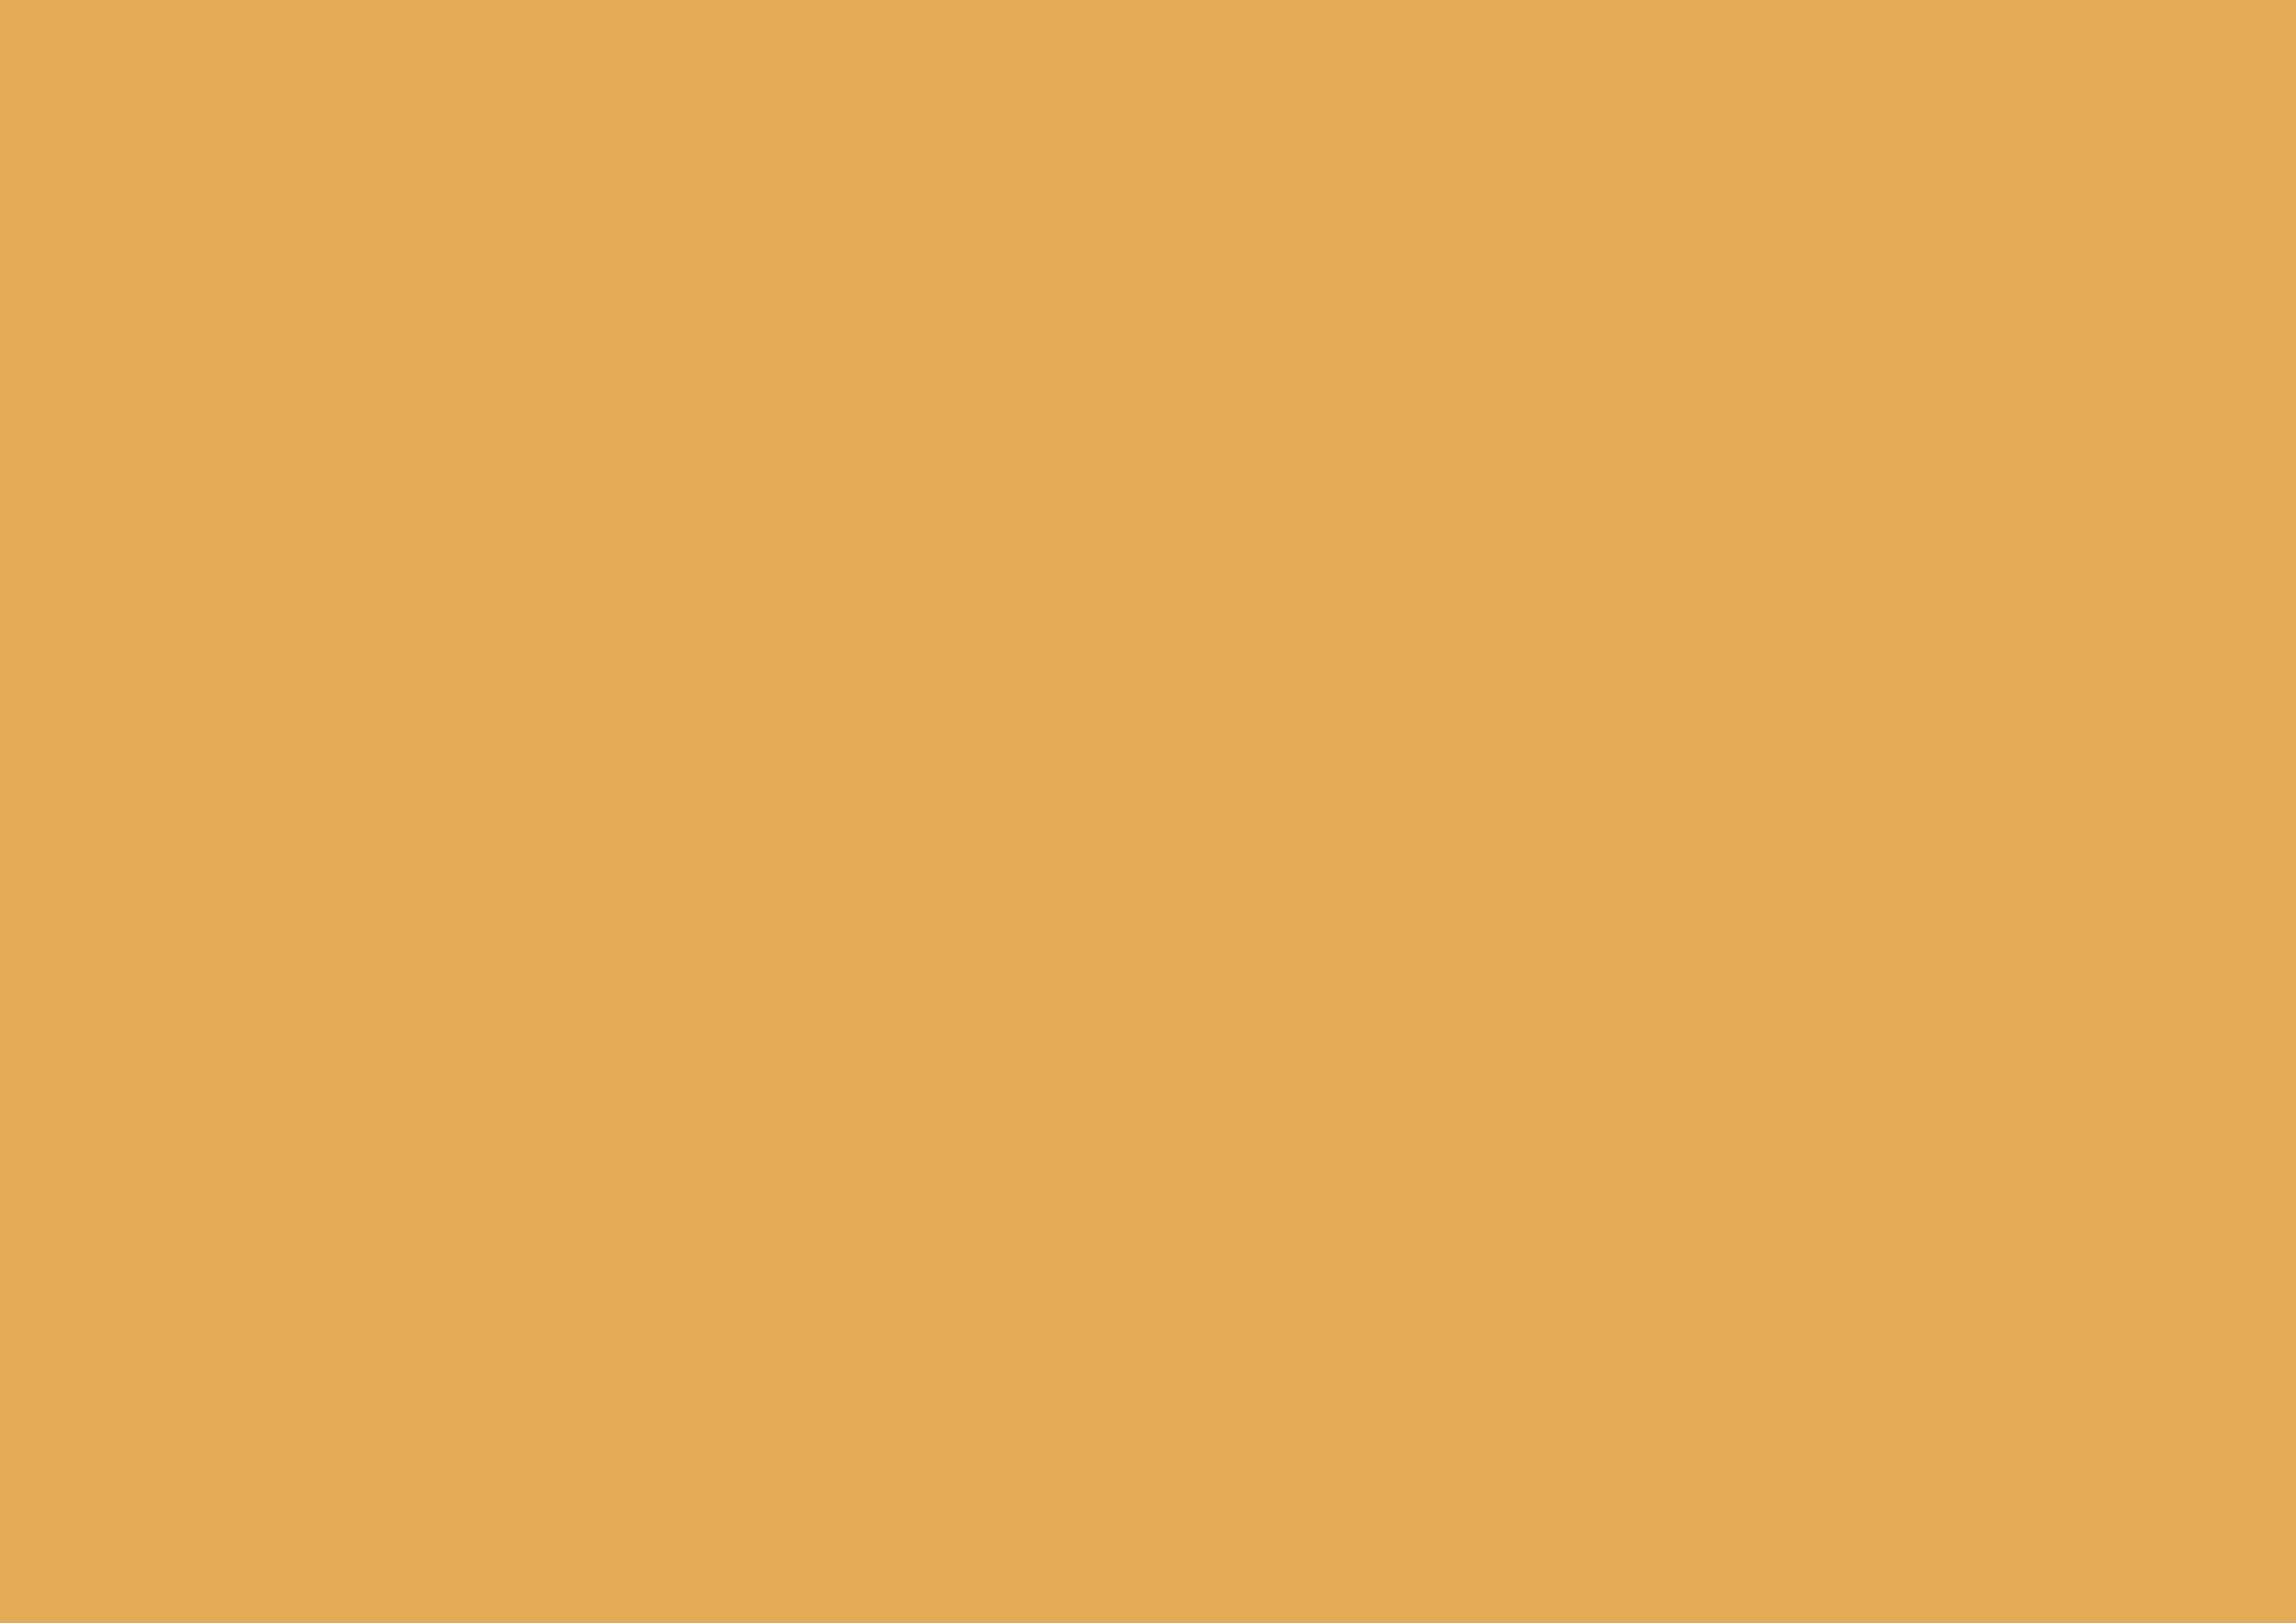 3508x2480 Sunray Solid Color Background